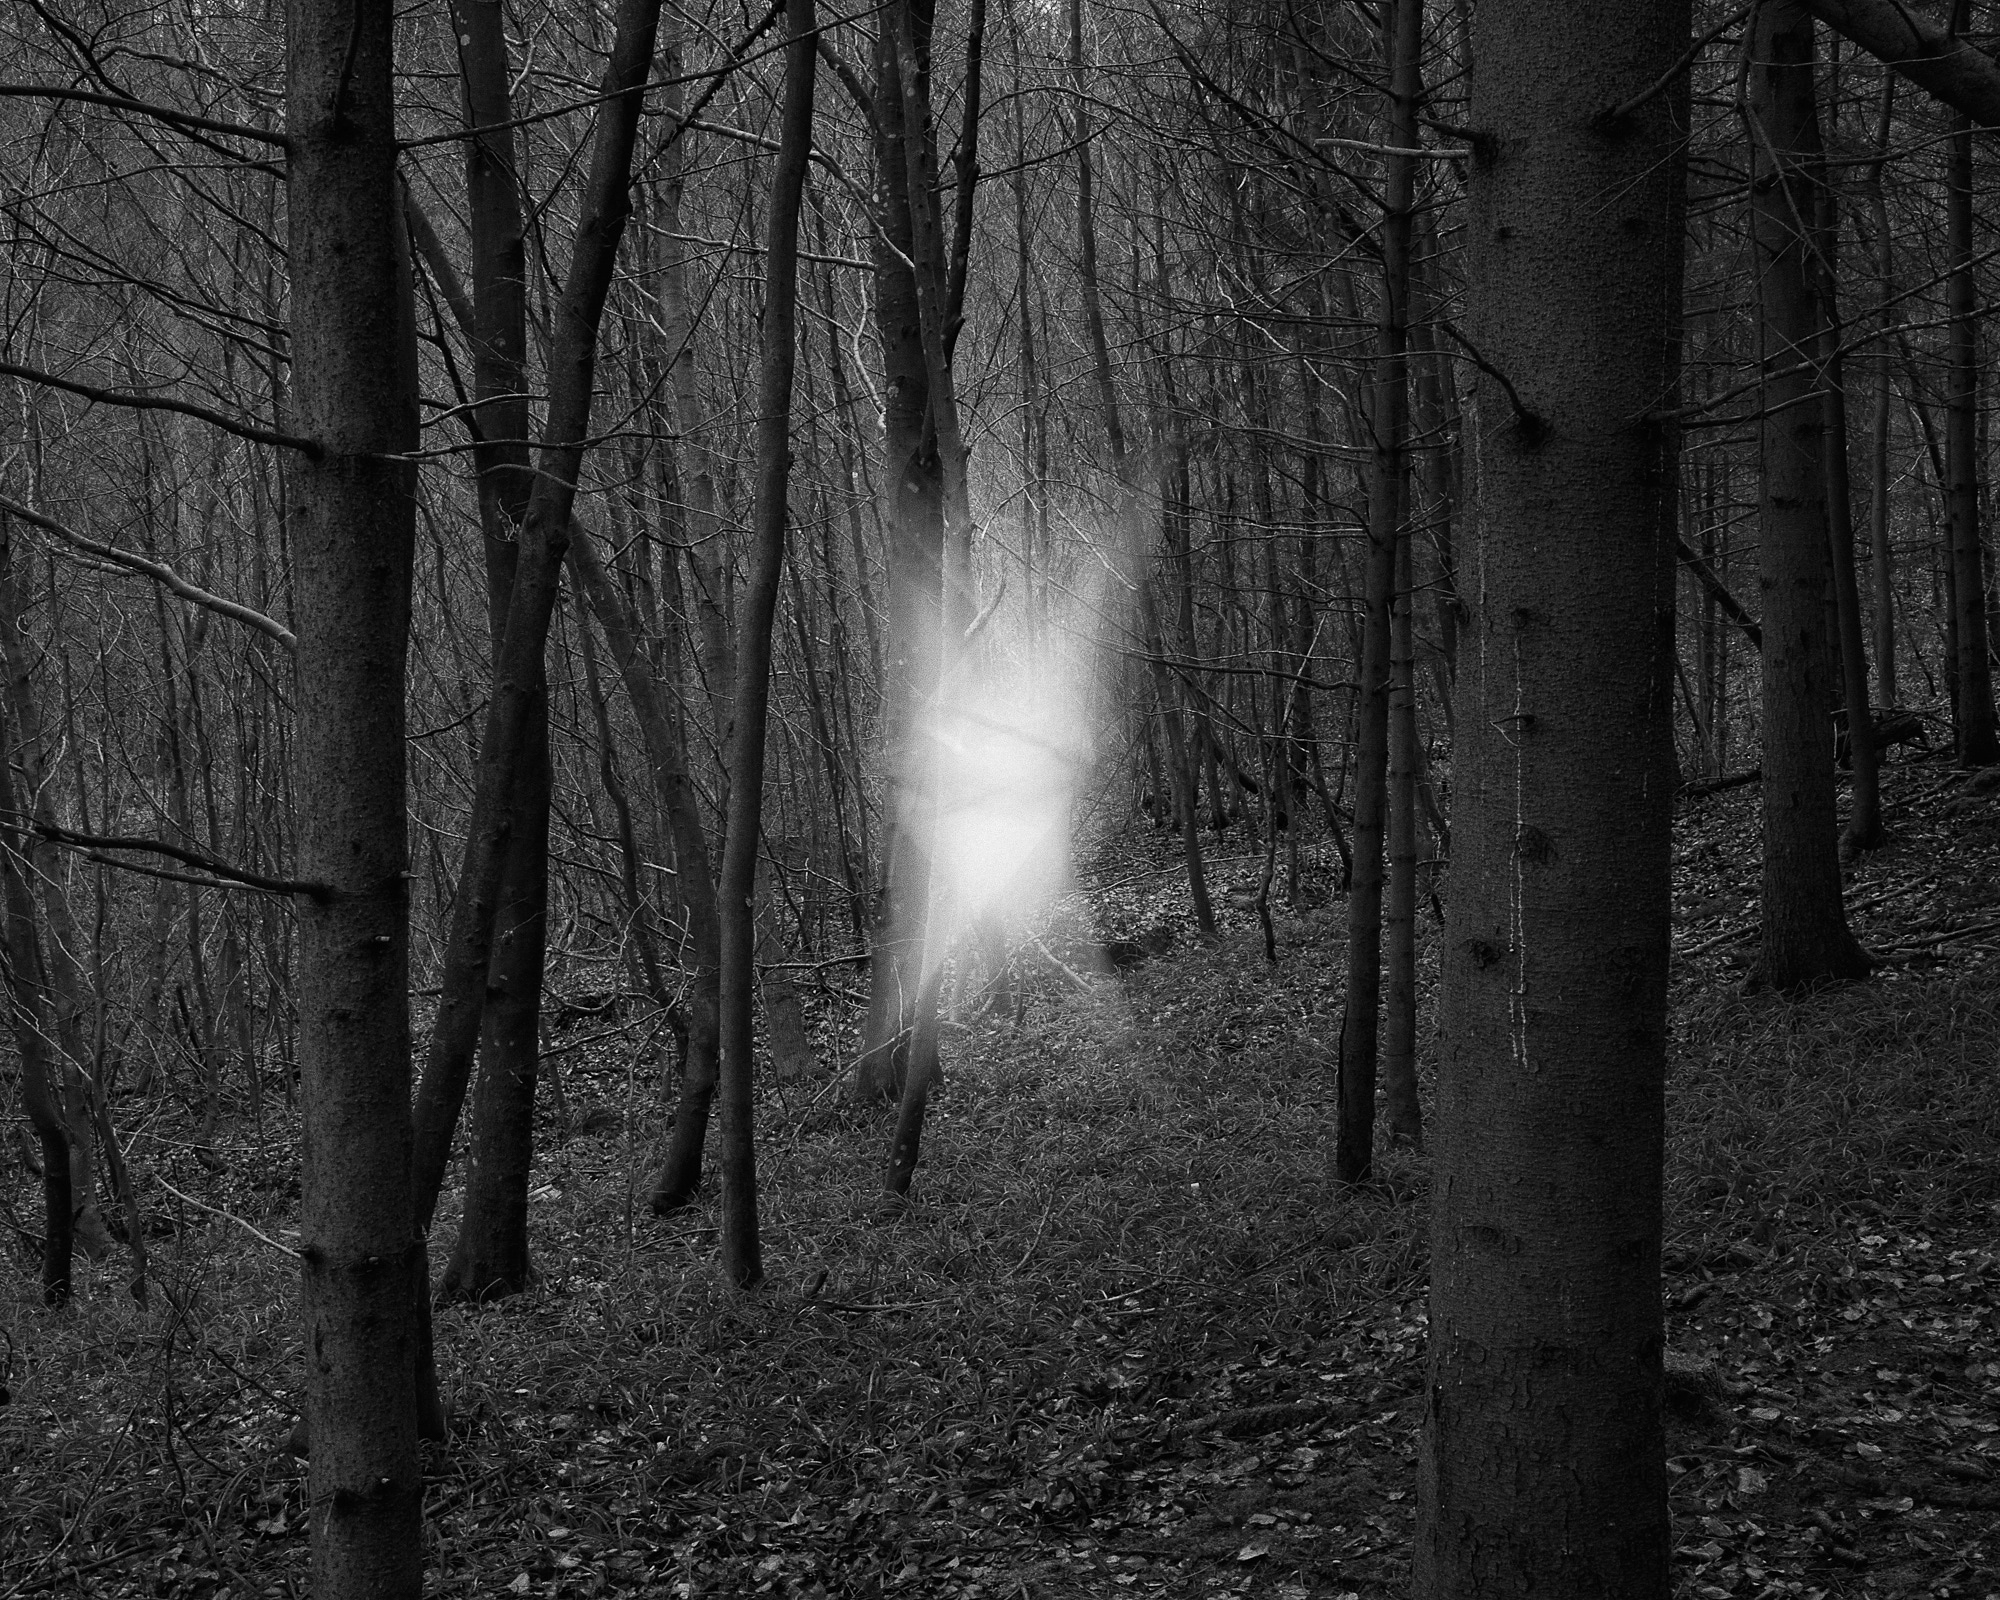 Black and white photograph of a forest scene with a mysterious light in the centre